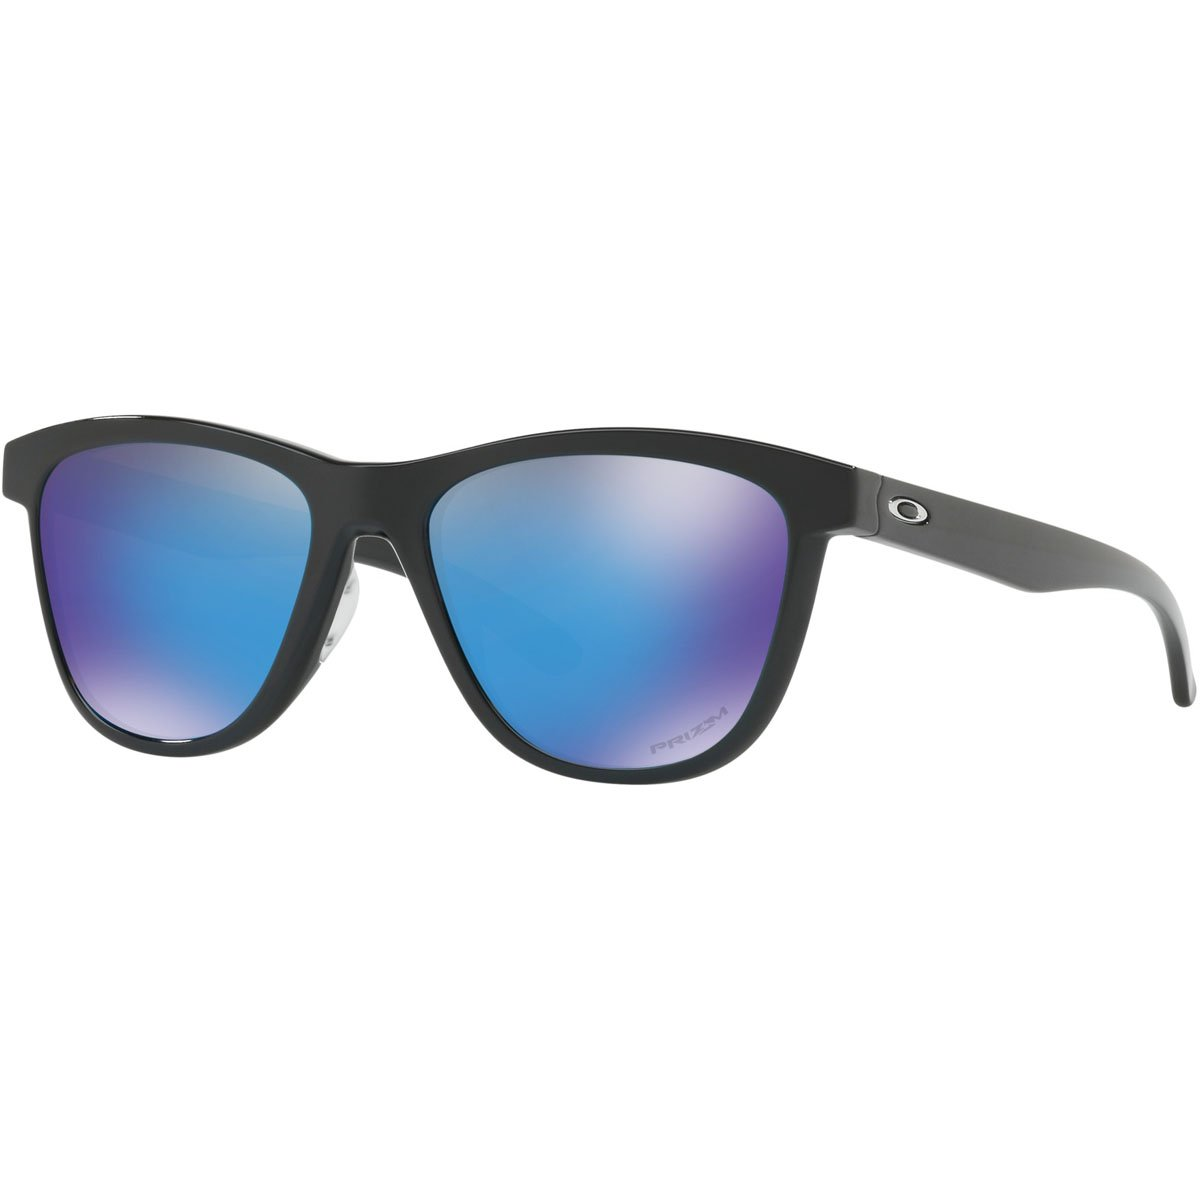 Oakley Women's OO9320 Moonlighter Round Sunglasses, Polished Black/Prizm Sapphire, 53 mm by Oakley